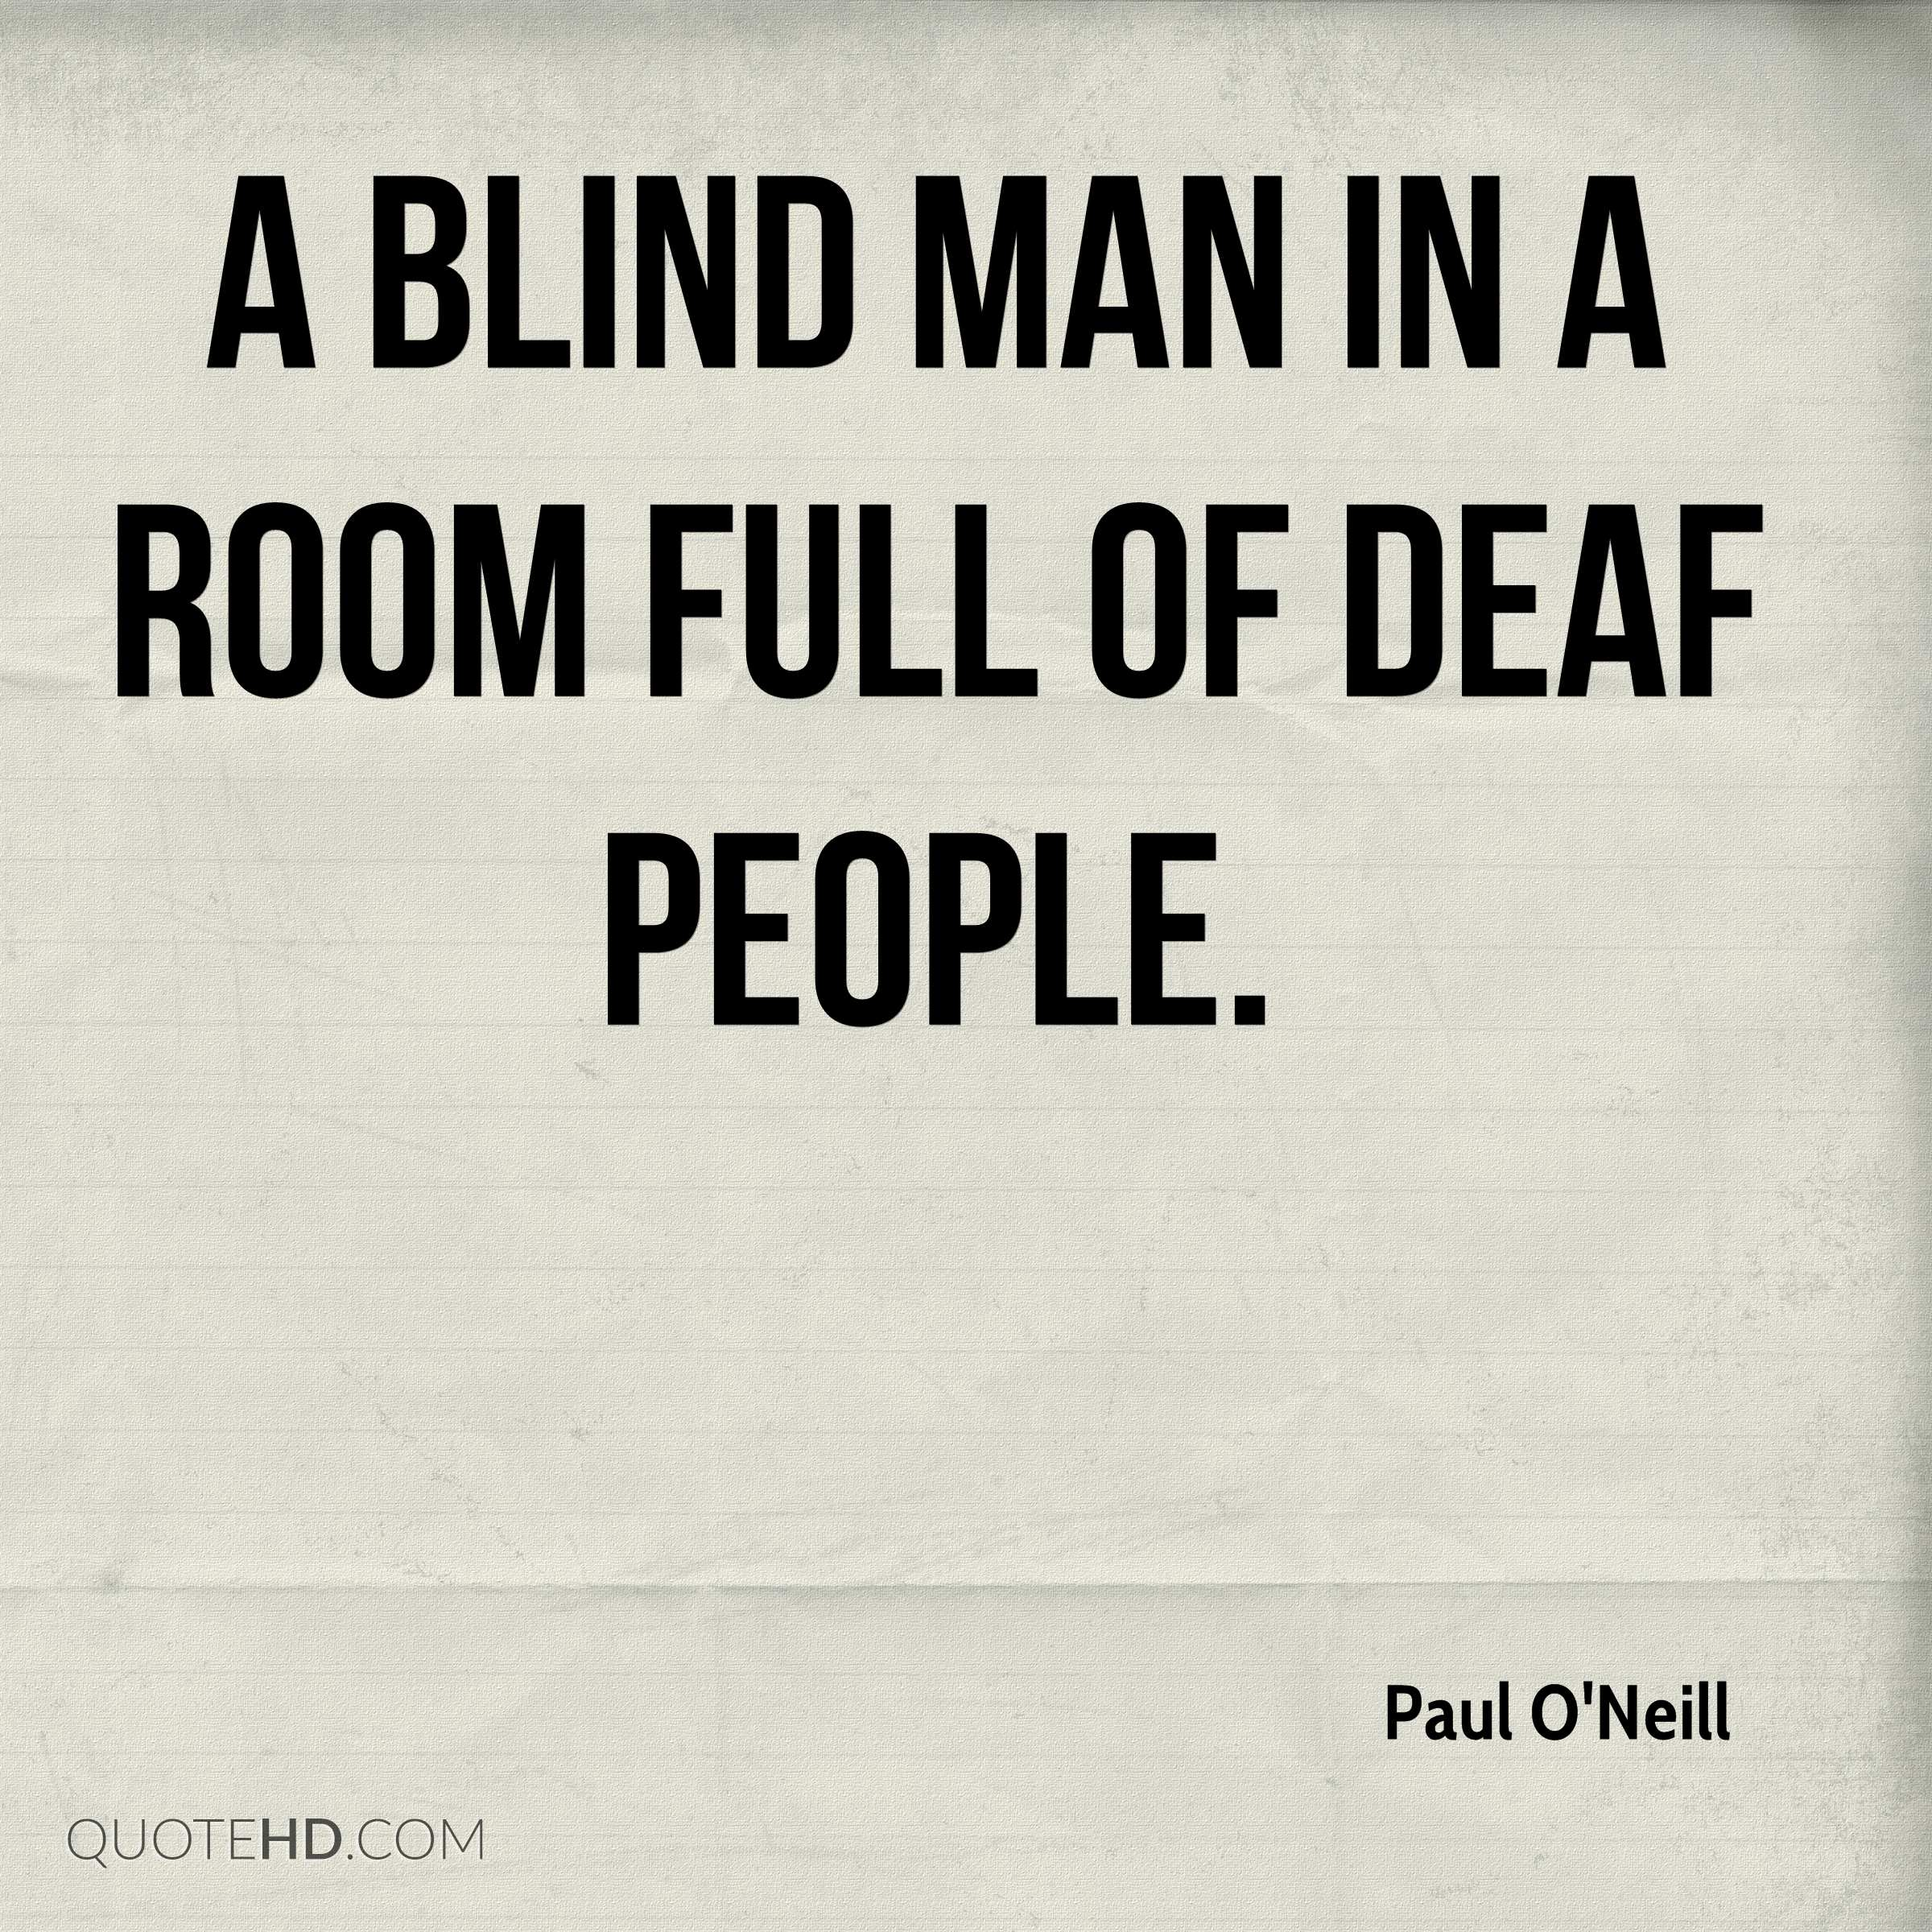 Blind Quotes: Blind Quotes Inspirational